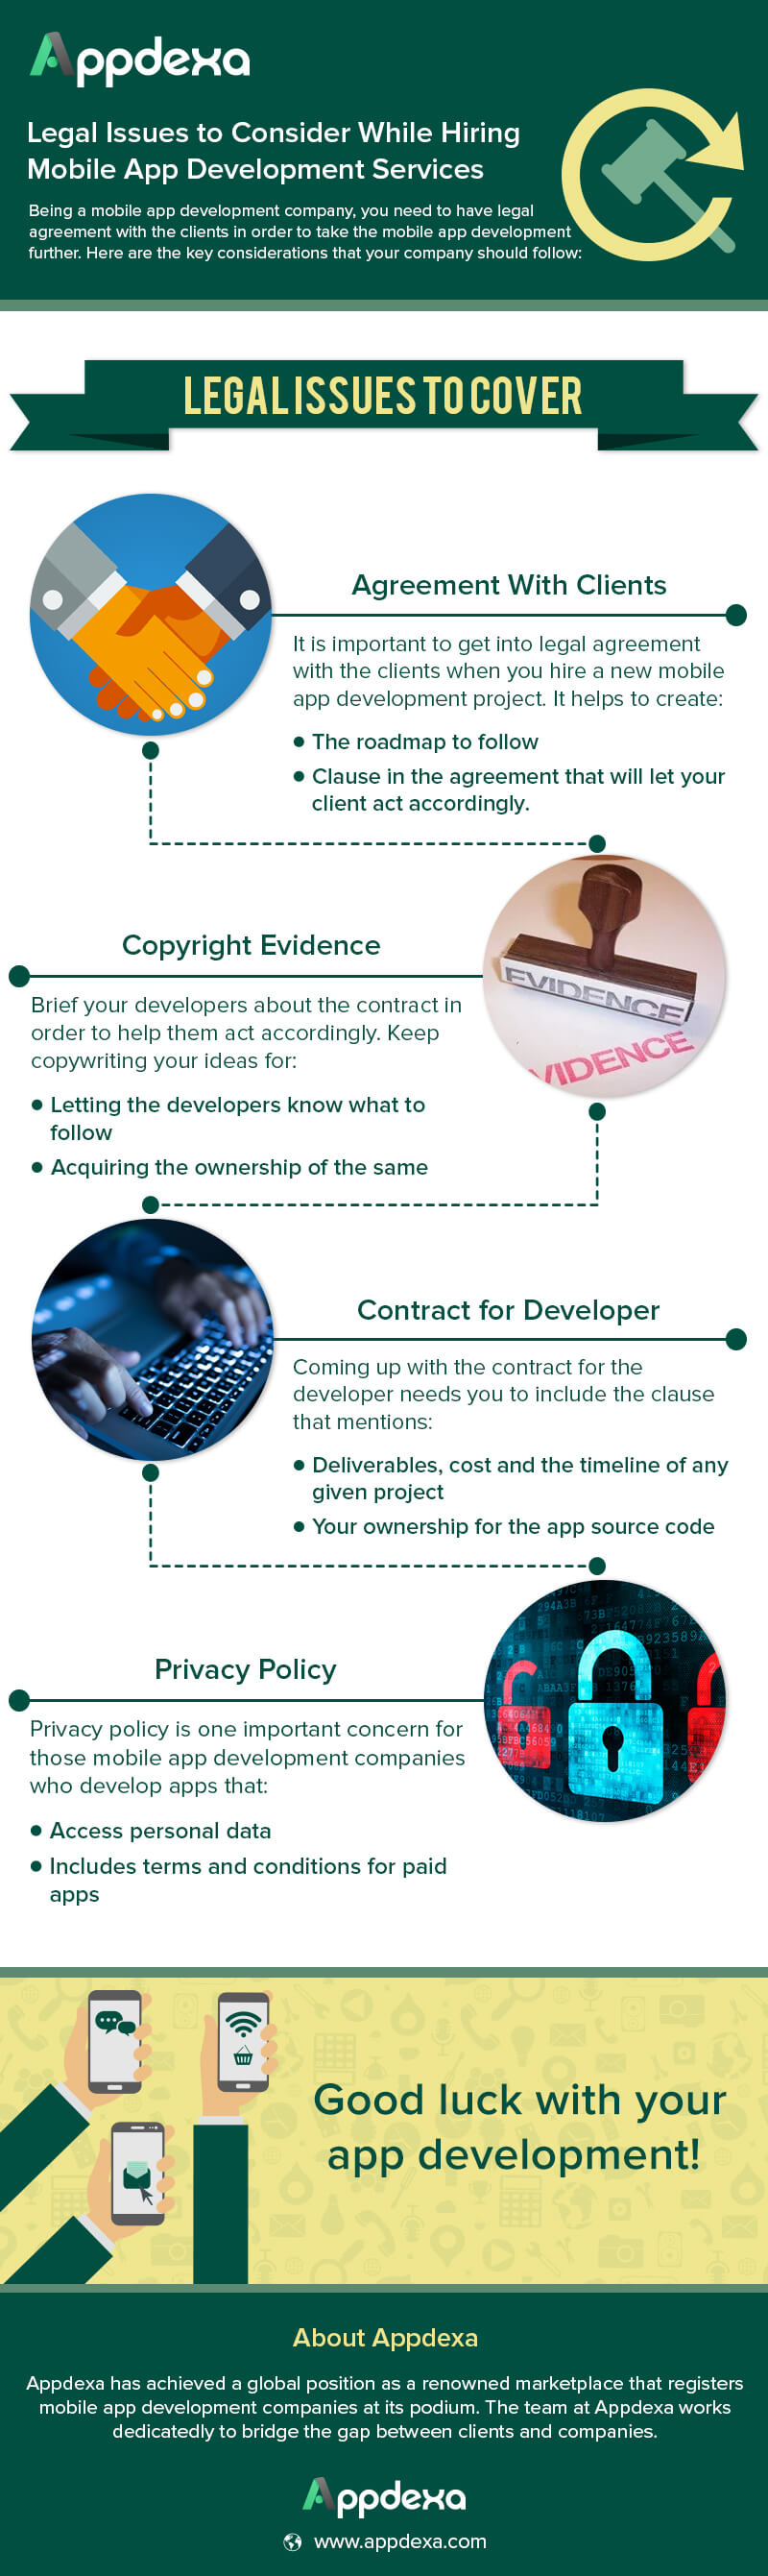 Info-graphics : Legal Issues to Consider While Hiring Mobile App Development Services - Image 1